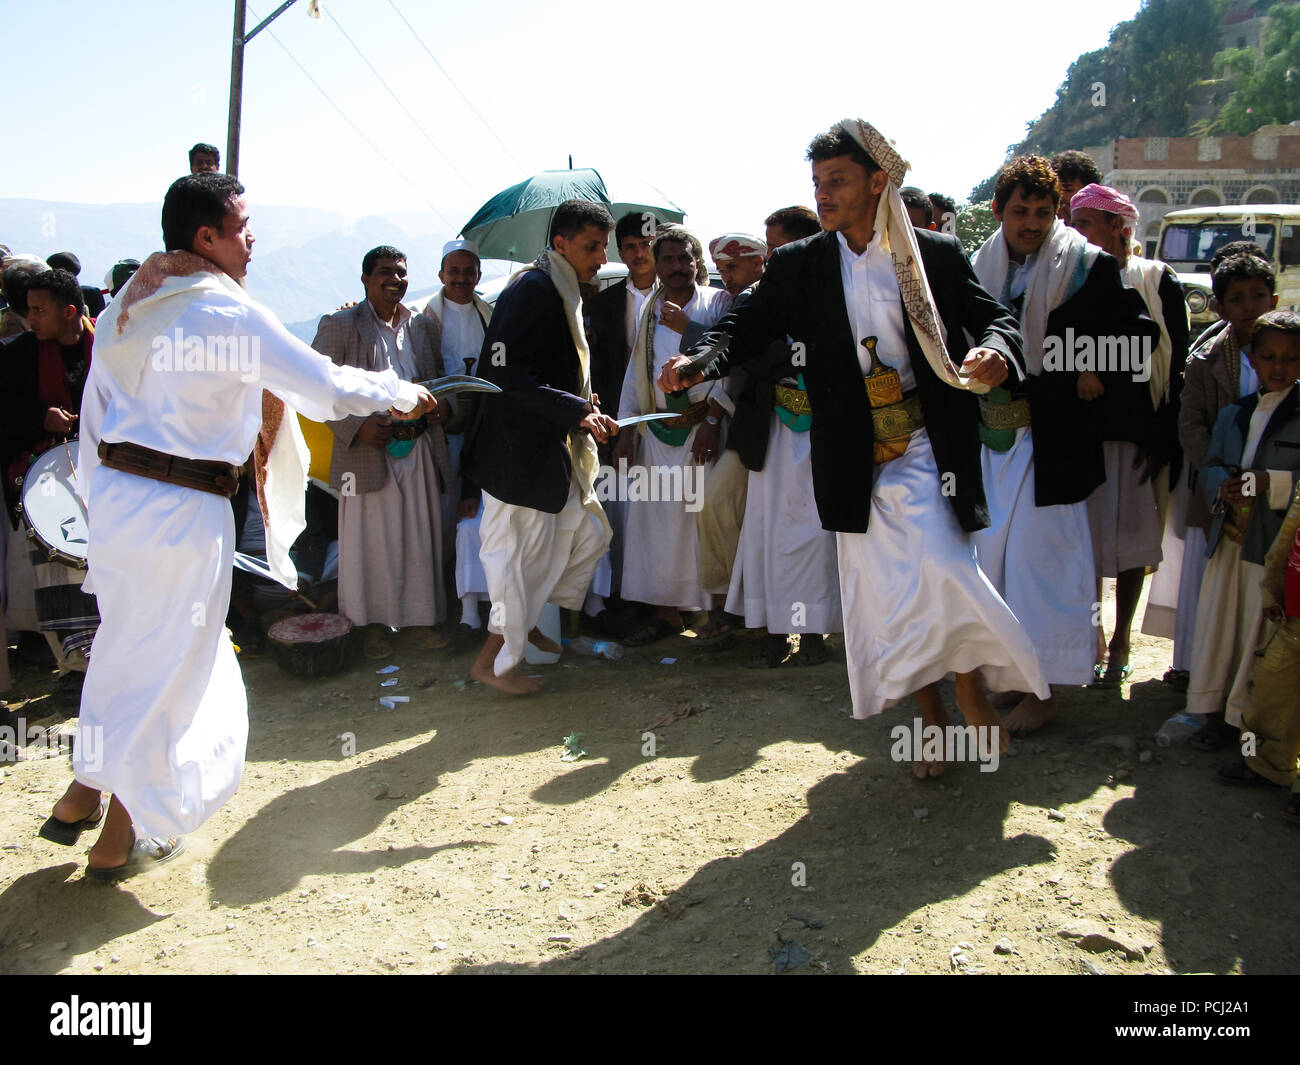 Men dancing with national traditional daggers aka Jambia at the wedding ceremony - 05-11-2009 Sanaa, Yemen - Stock Image